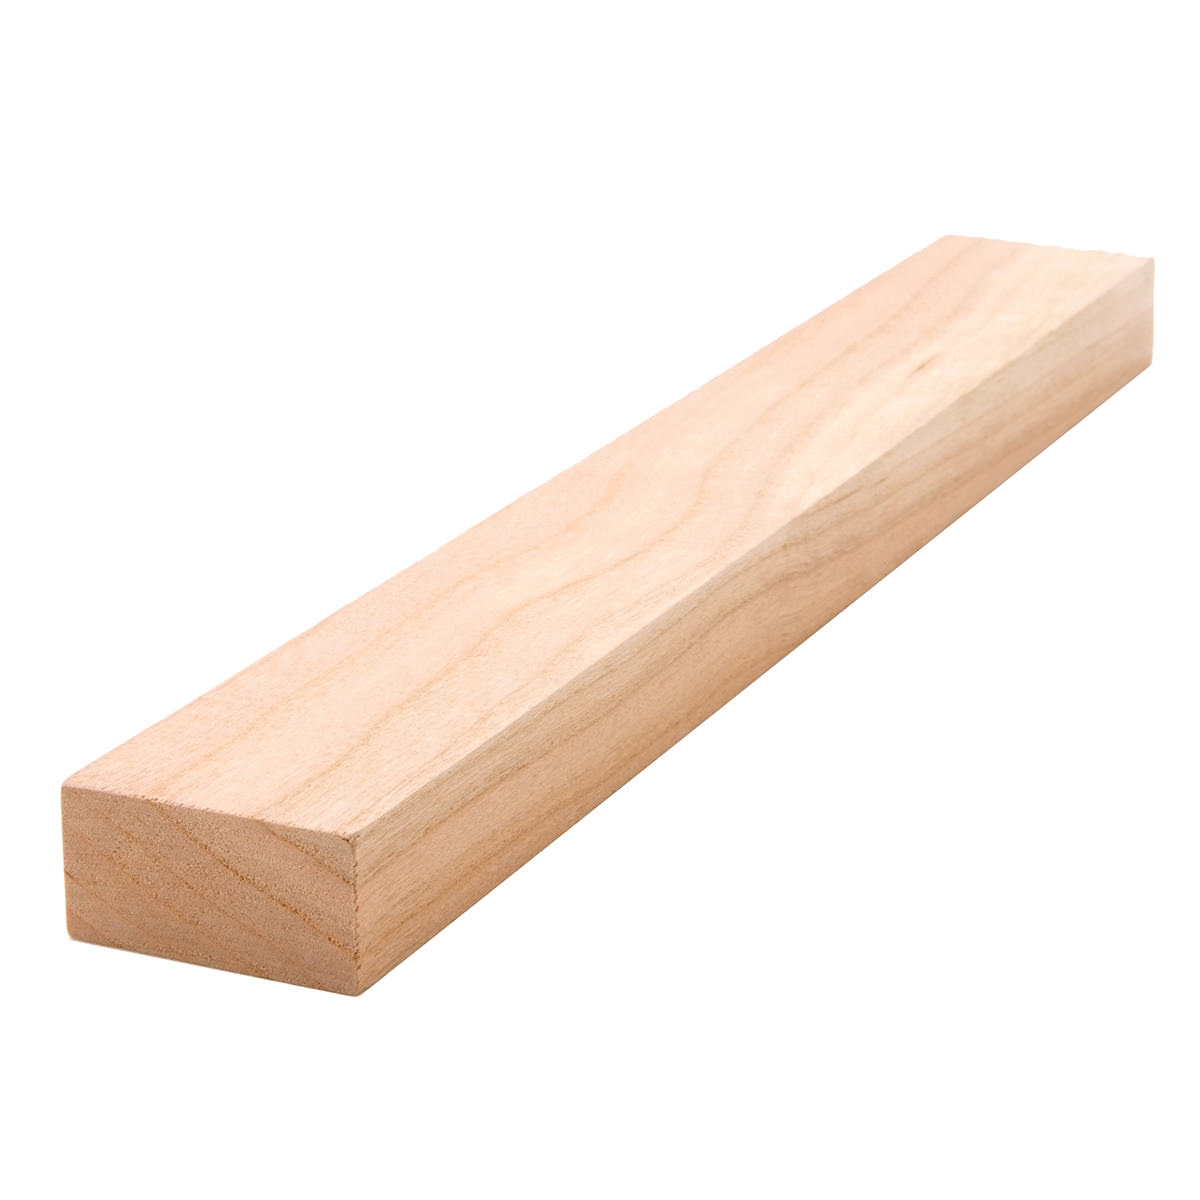 Quot cherry s lumber boards flat